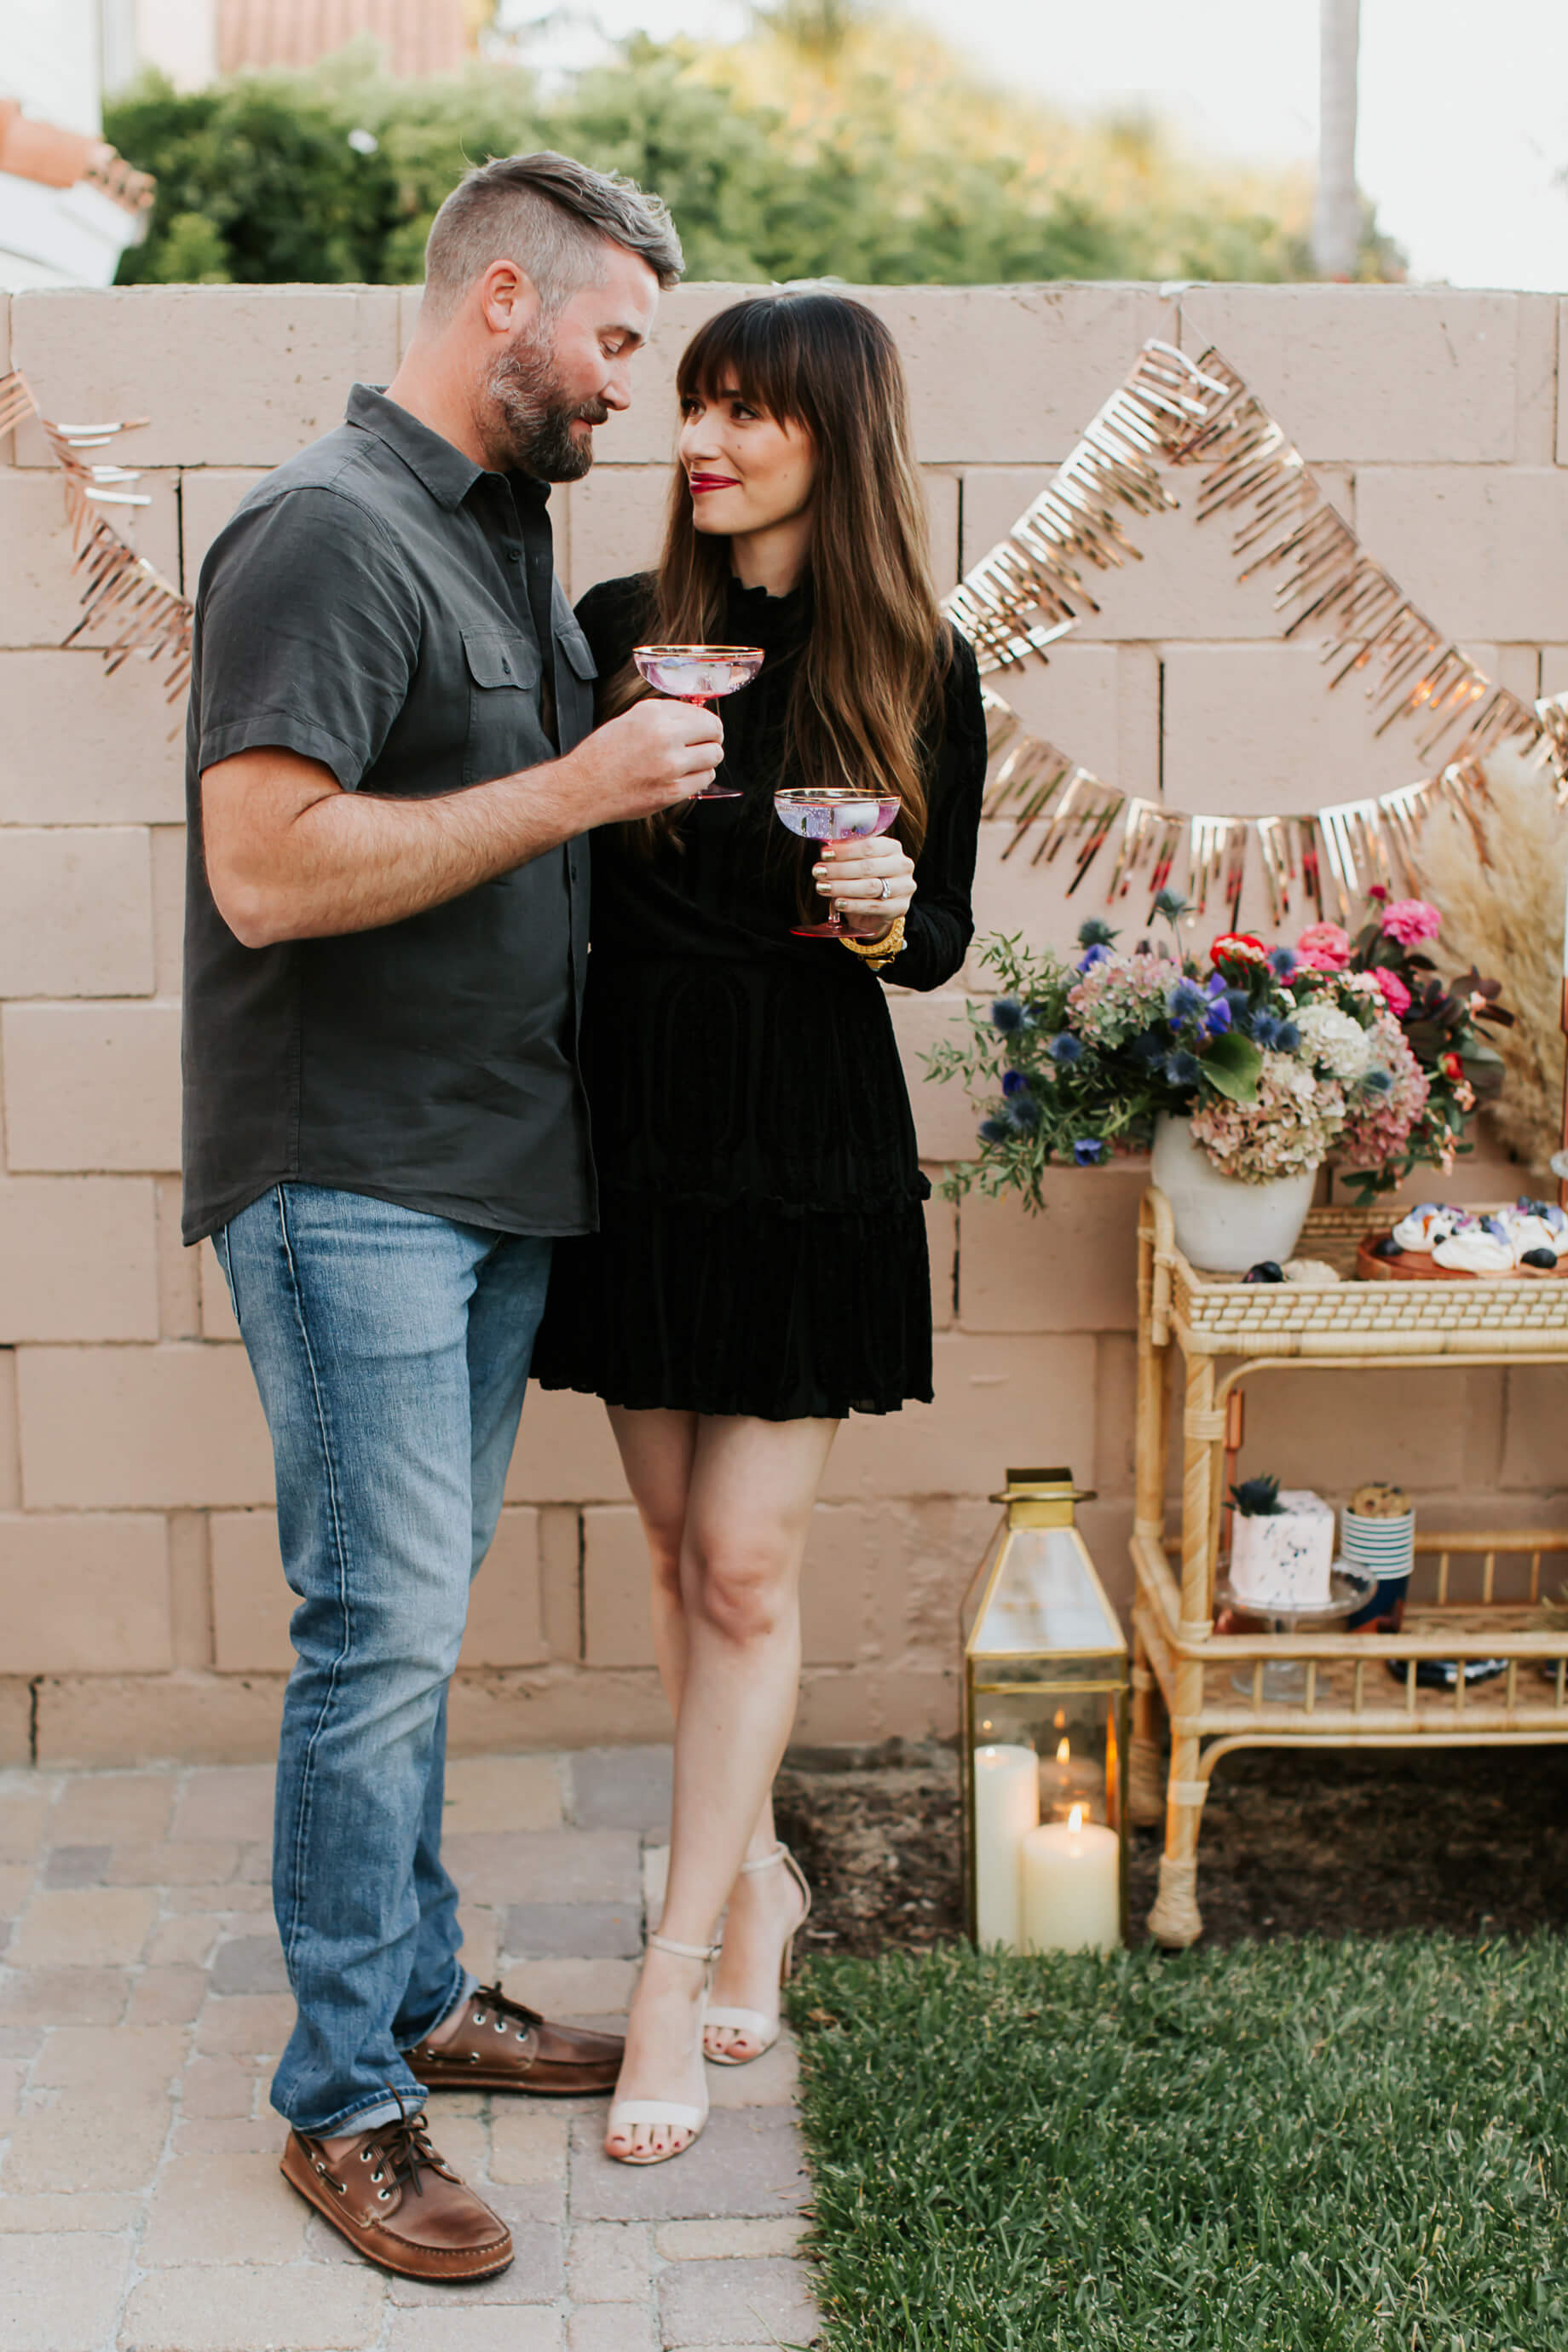 Our Evening Gender Reveal Party